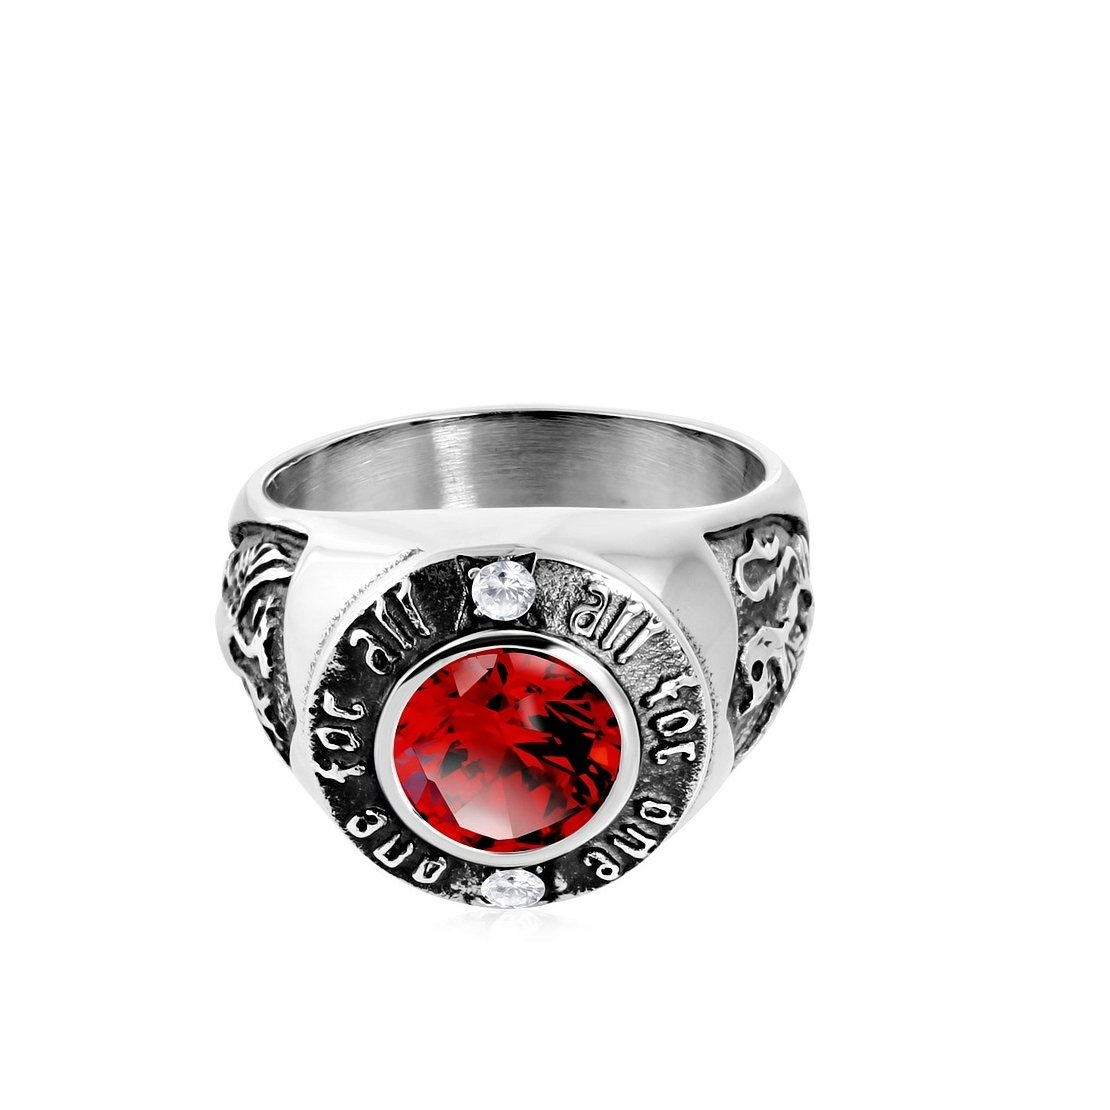 Stainless Steel 2 Color All For One Coat Of Arms Biker Ring with Light Siam Red & Clear CZ